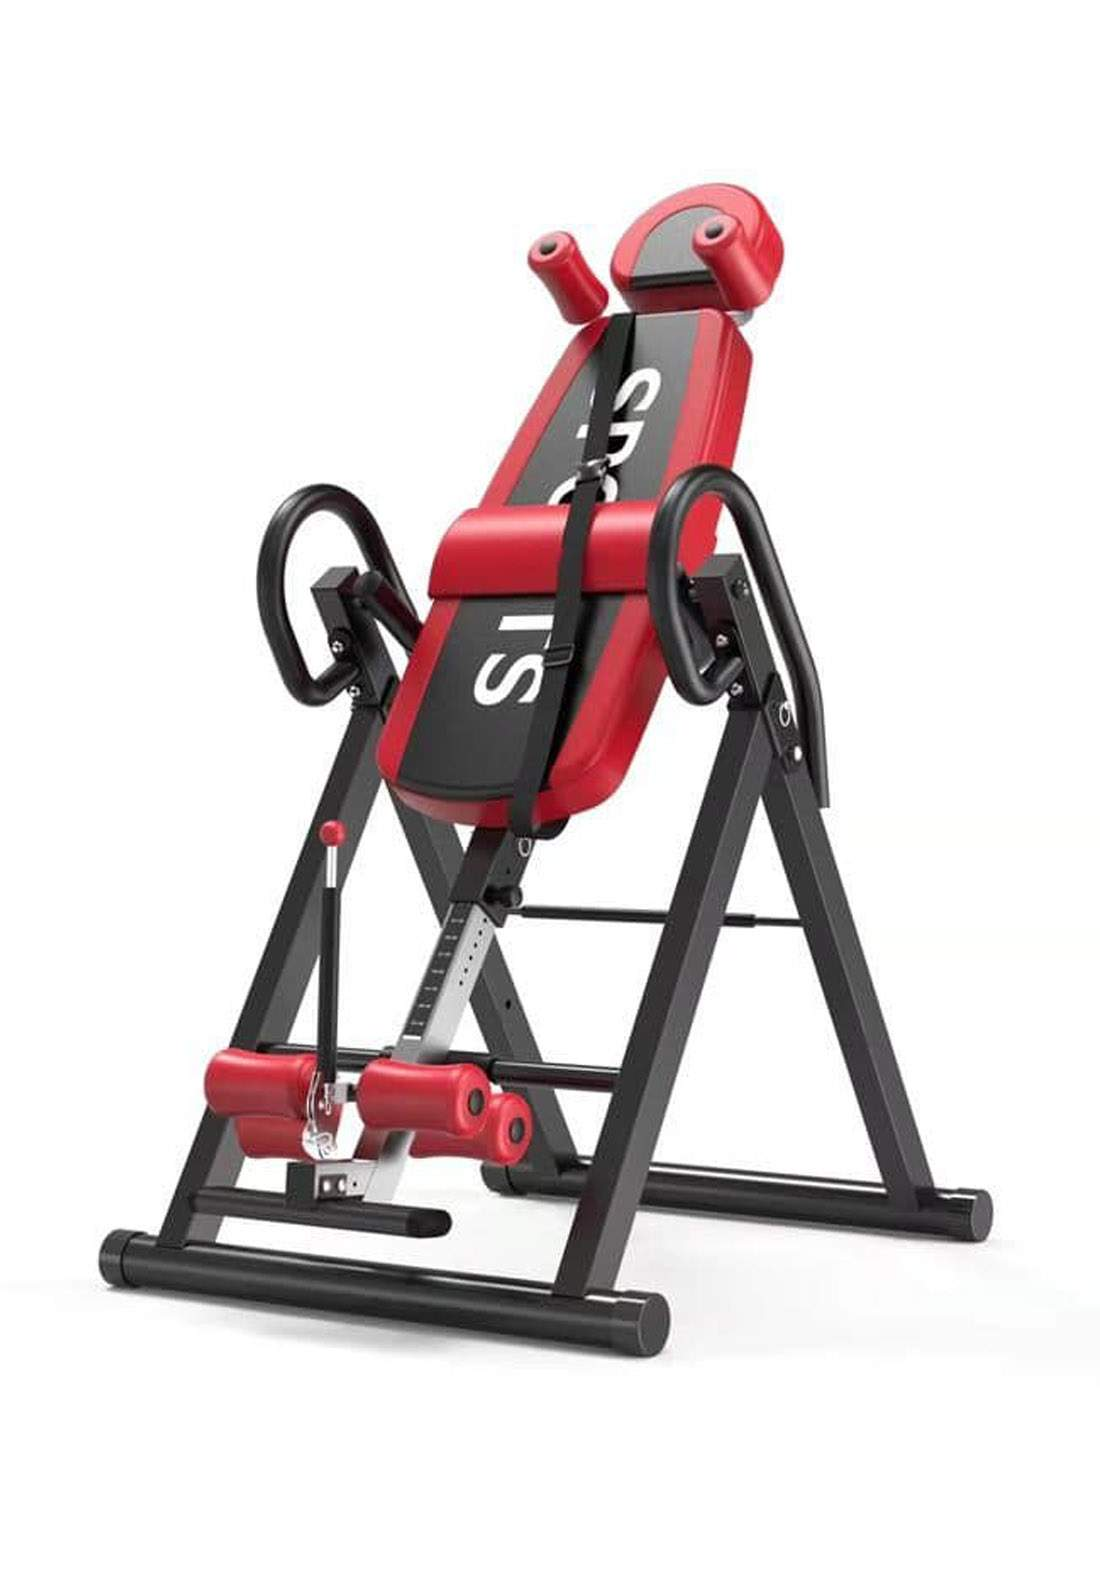 Back Stretch Machine and Inversion Table for Lower Back Pain Relief  جهاز سحب فقرات لون احمر